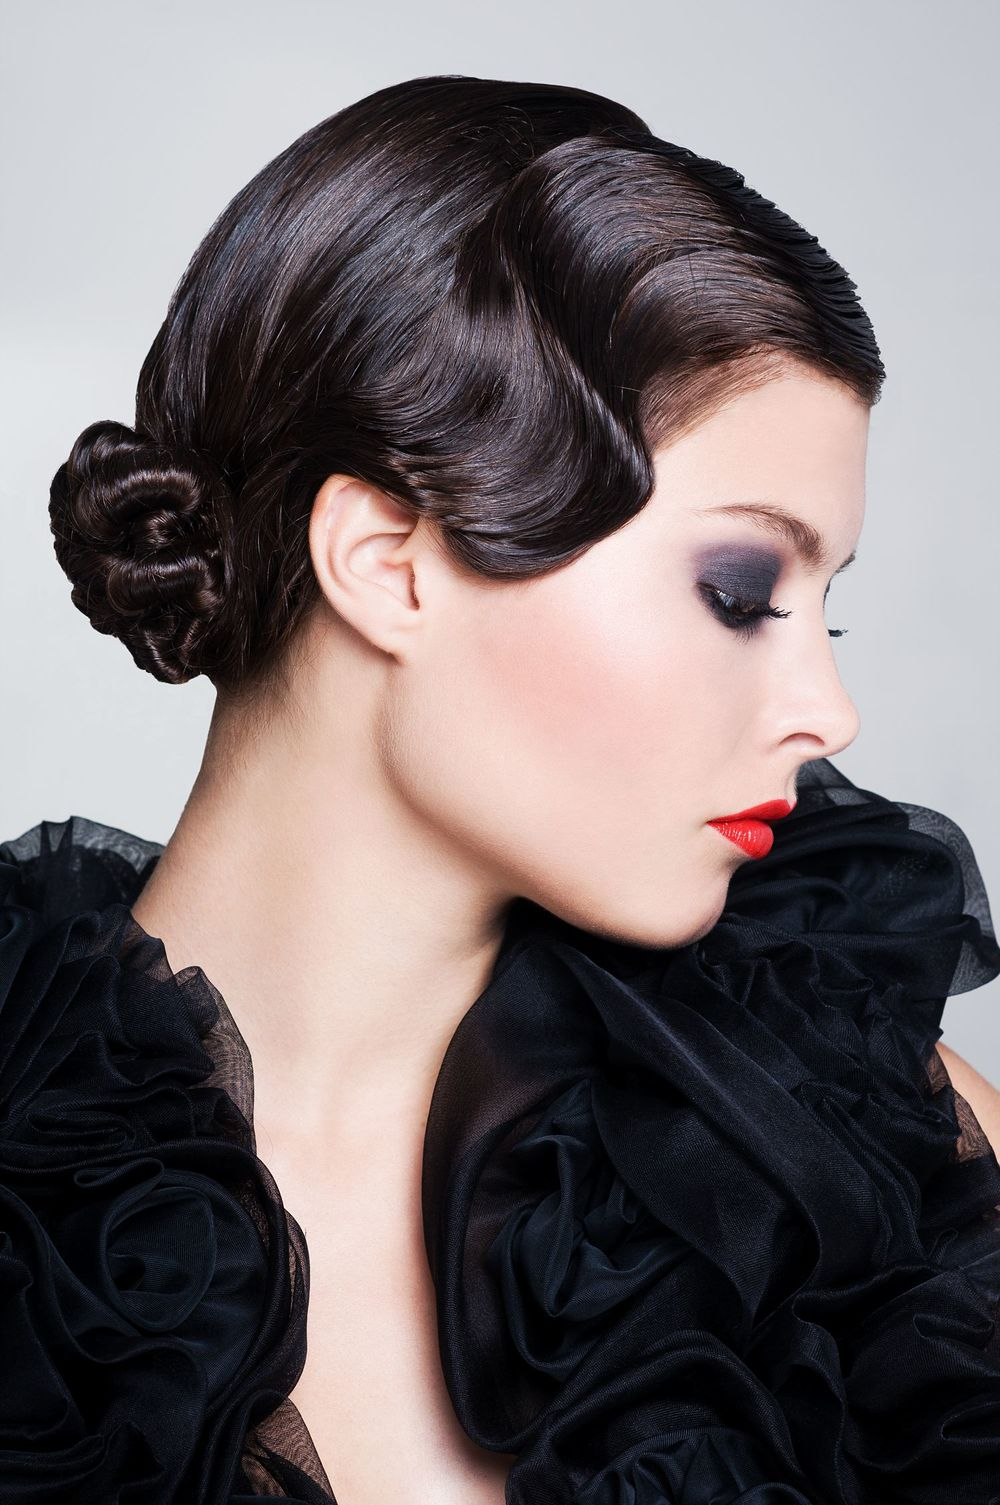 model  Ayla  hair   Marco Arena & Team   make-up  Vanessa Hauser Take a look into the   gallery  !